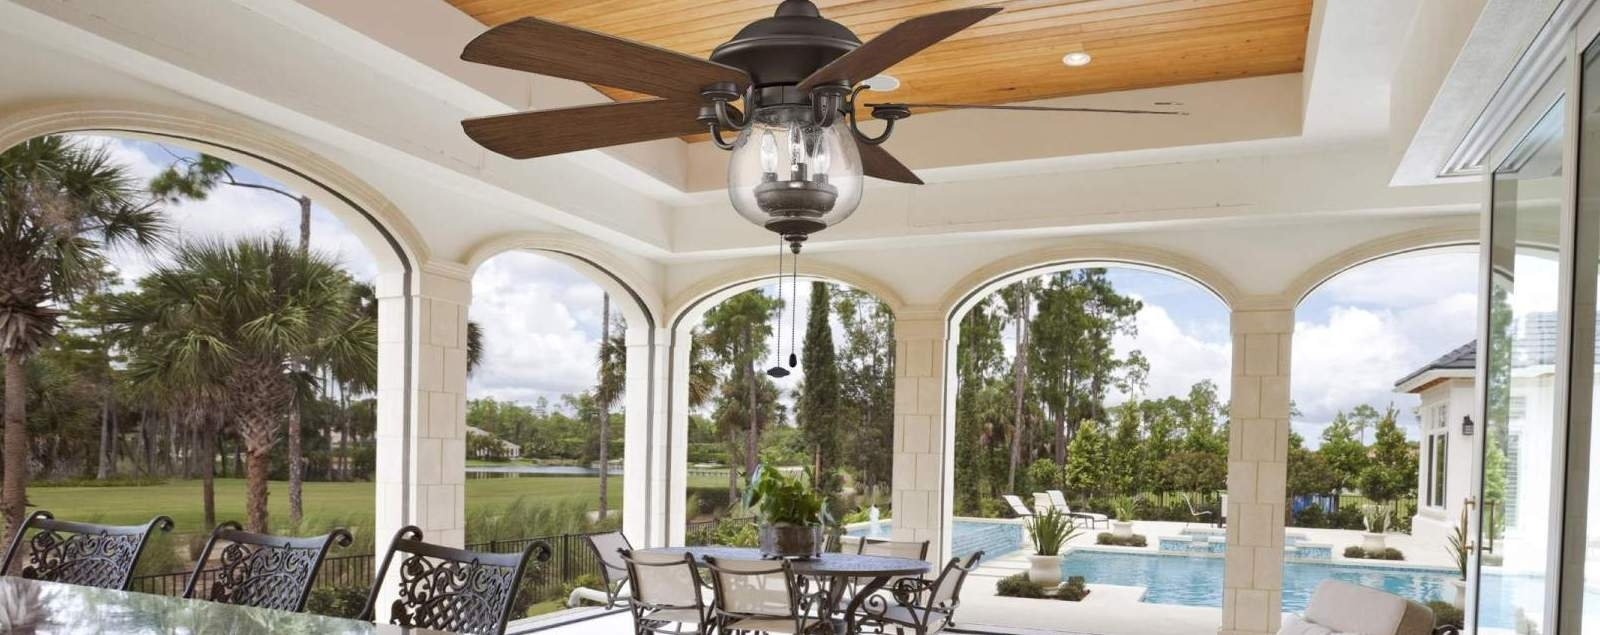 Outdoor Ceiling Fans – Shop Wet, Dry, And Damp Rated Outdoor Fans Throughout Current Outdoor Ceiling Fans With Remote (View 12 of 20)